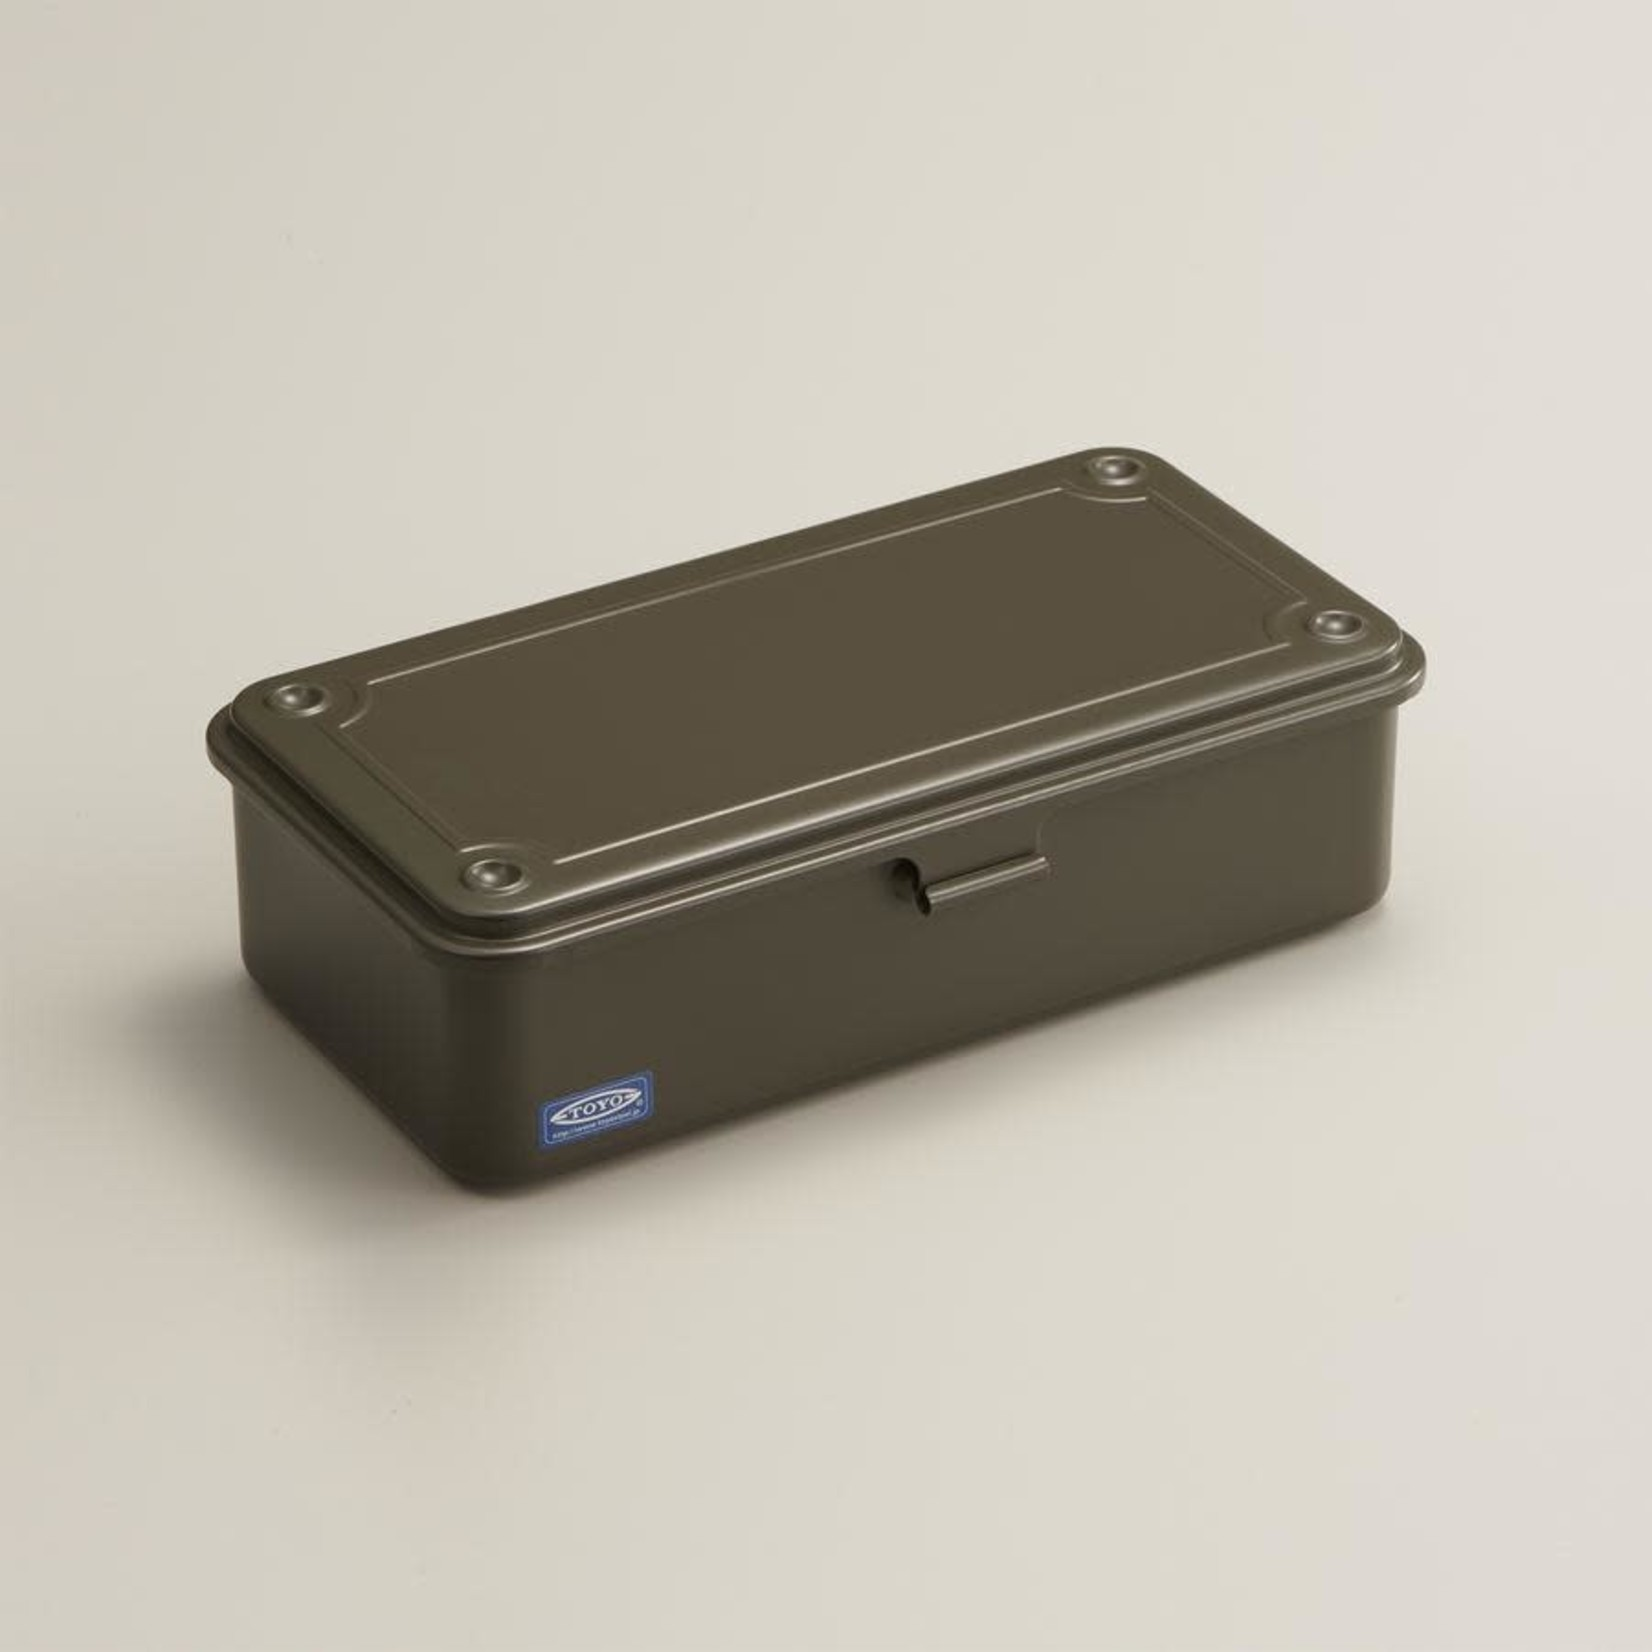 Toyo Toyo Steel Stackable Storage Box T-190 Military Green